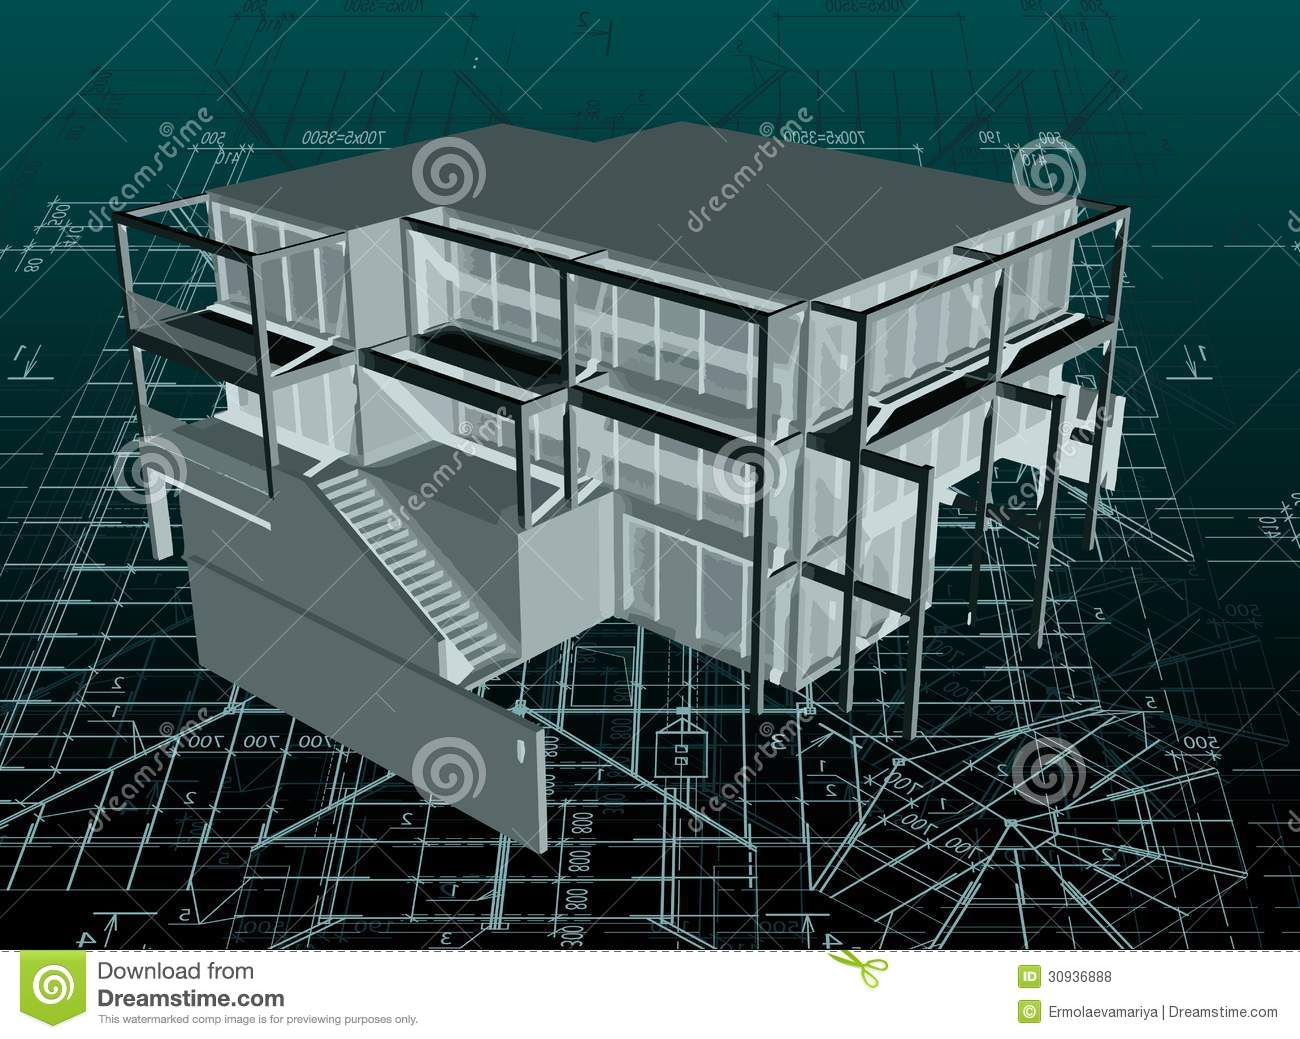 Picture Book Illustration Making An Architectural Model: Architecture Model House With Blueprint. Vector Royalty